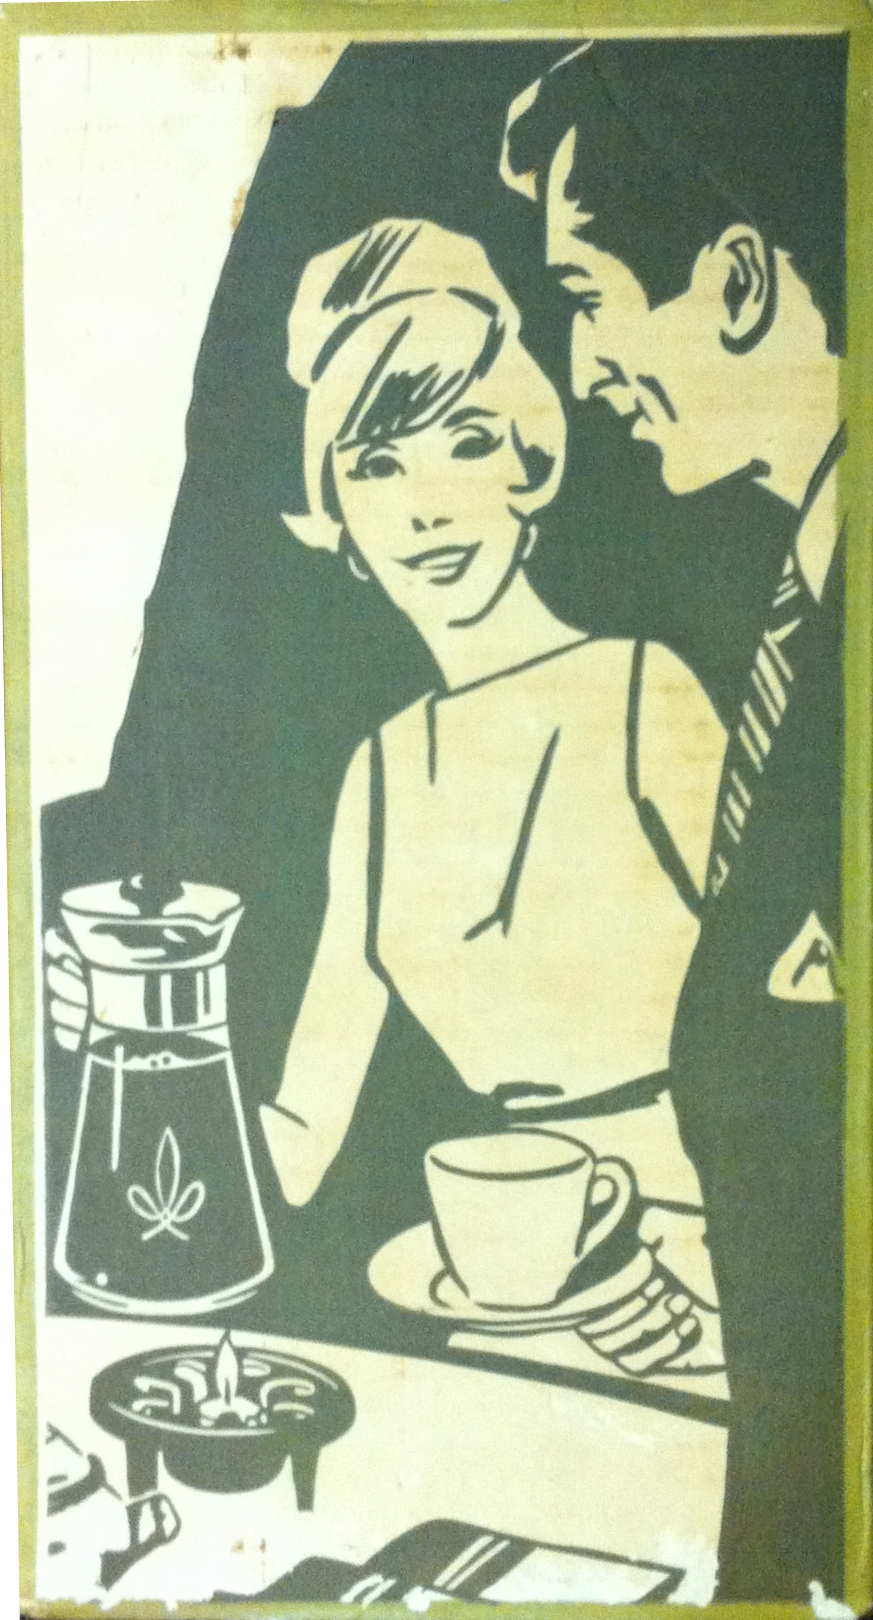 Photo: Packaging for a 1960s coffee jug